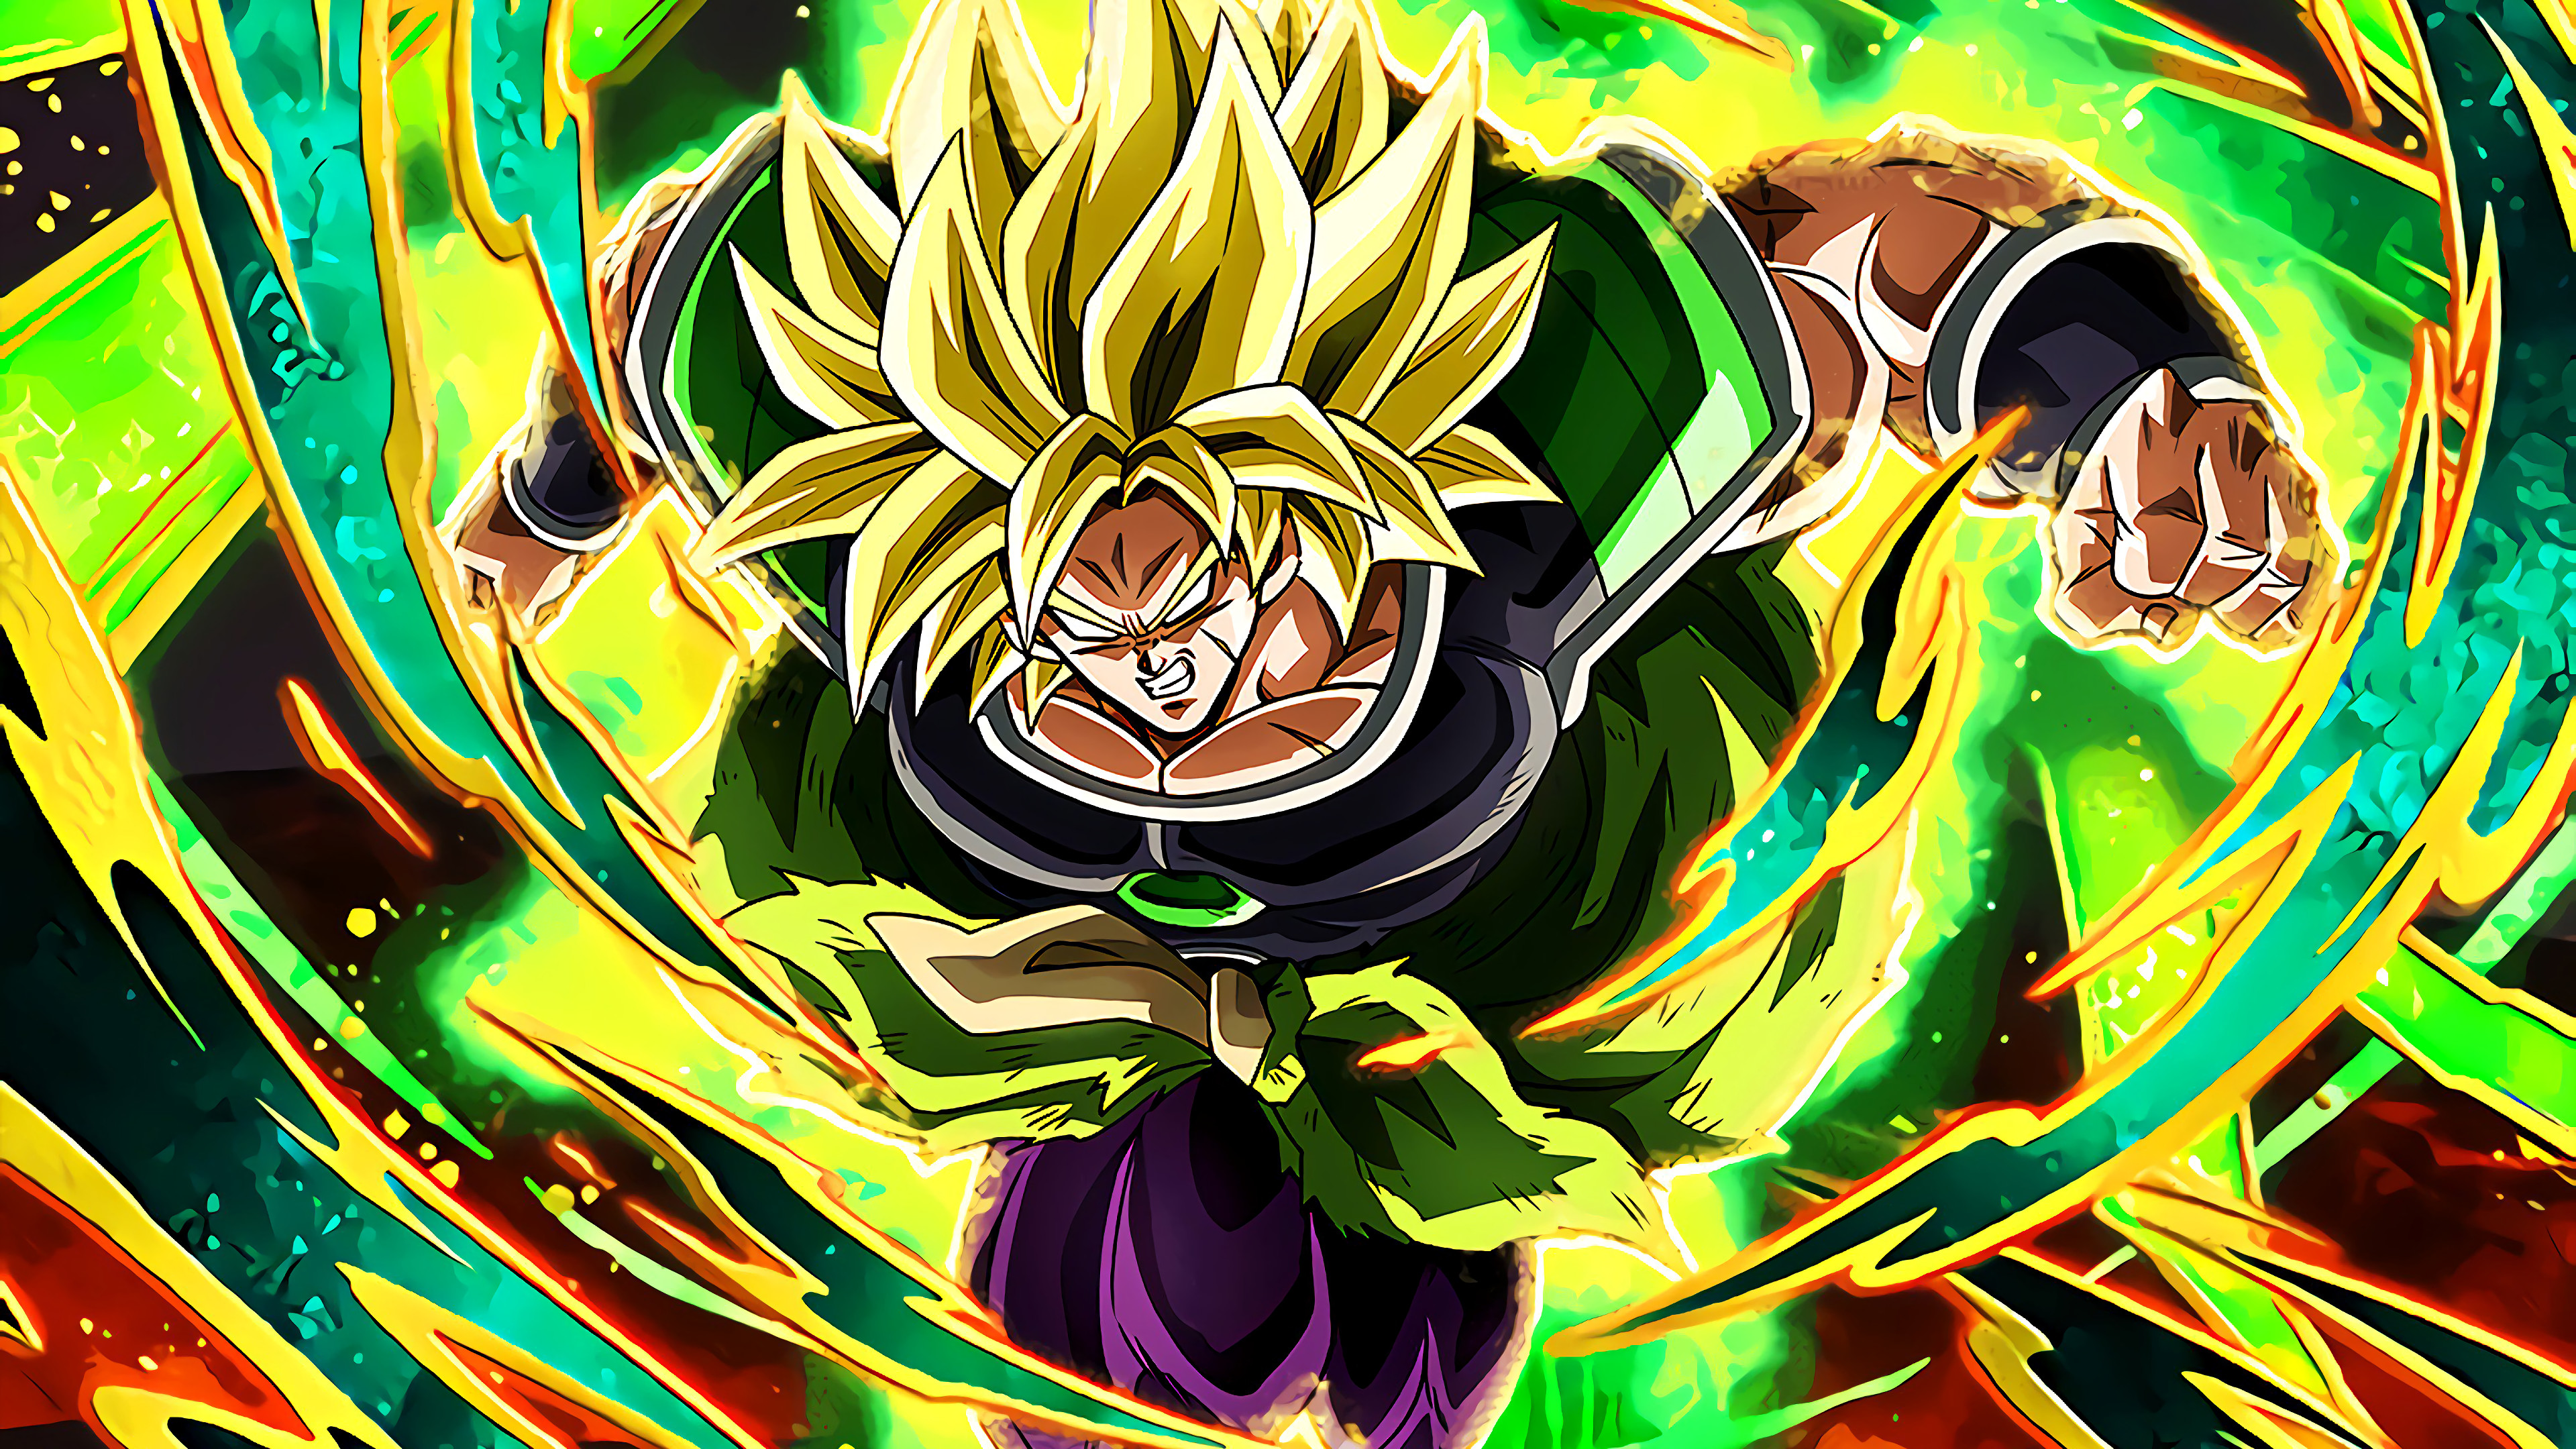 Broly Super Saiyan Dragon Ball Super 3840x2160 Download Hd Wallpaper Wallpapertip